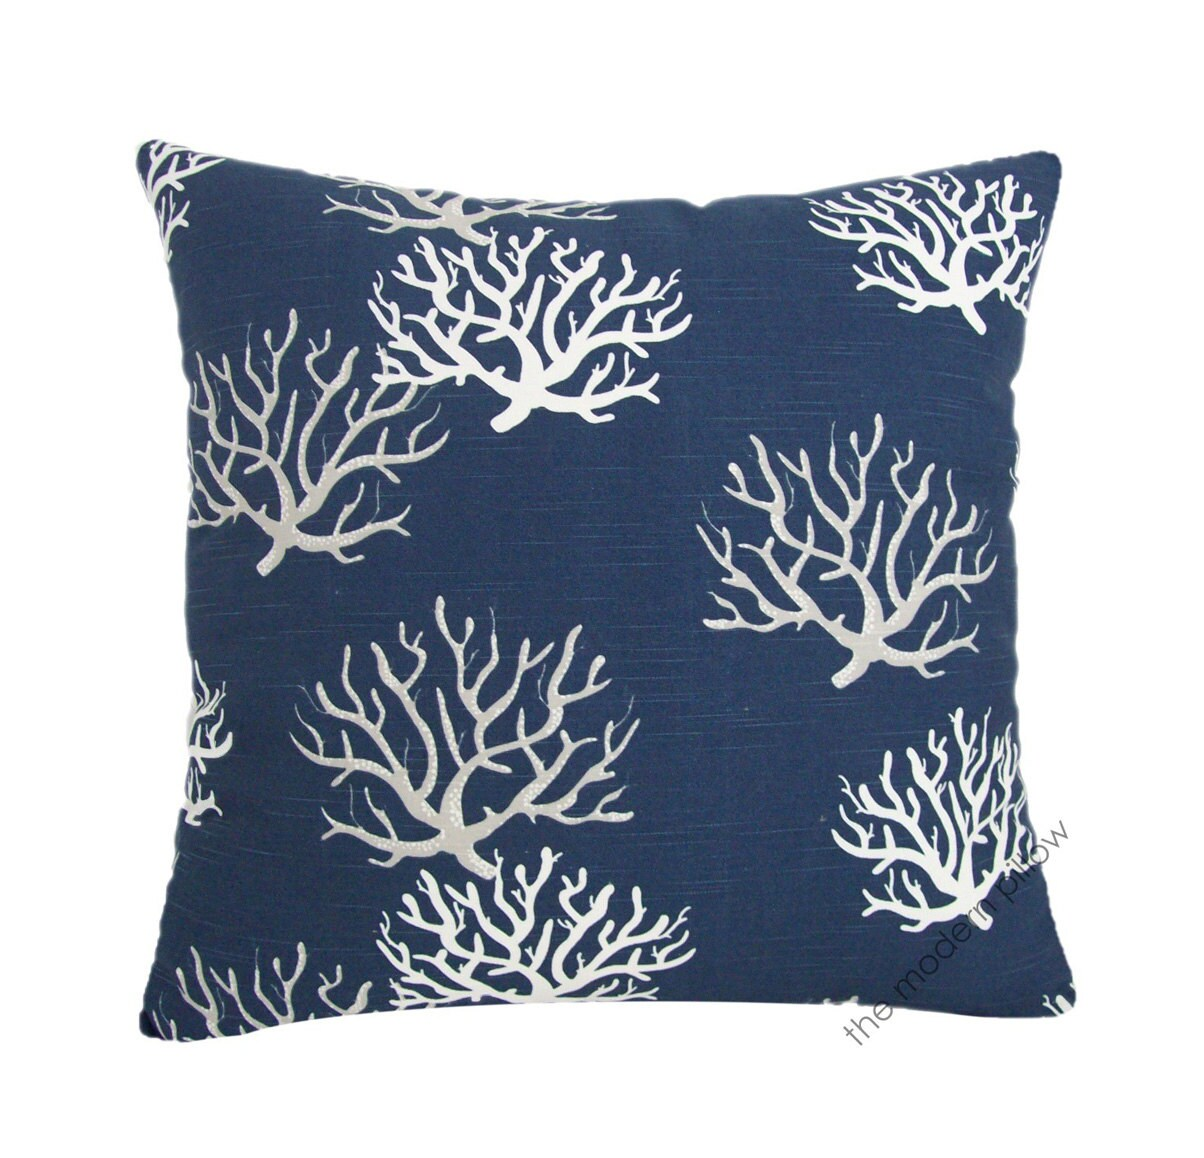 navy blue gray white coral decorative throw pillow cover. Black Bedroom Furniture Sets. Home Design Ideas